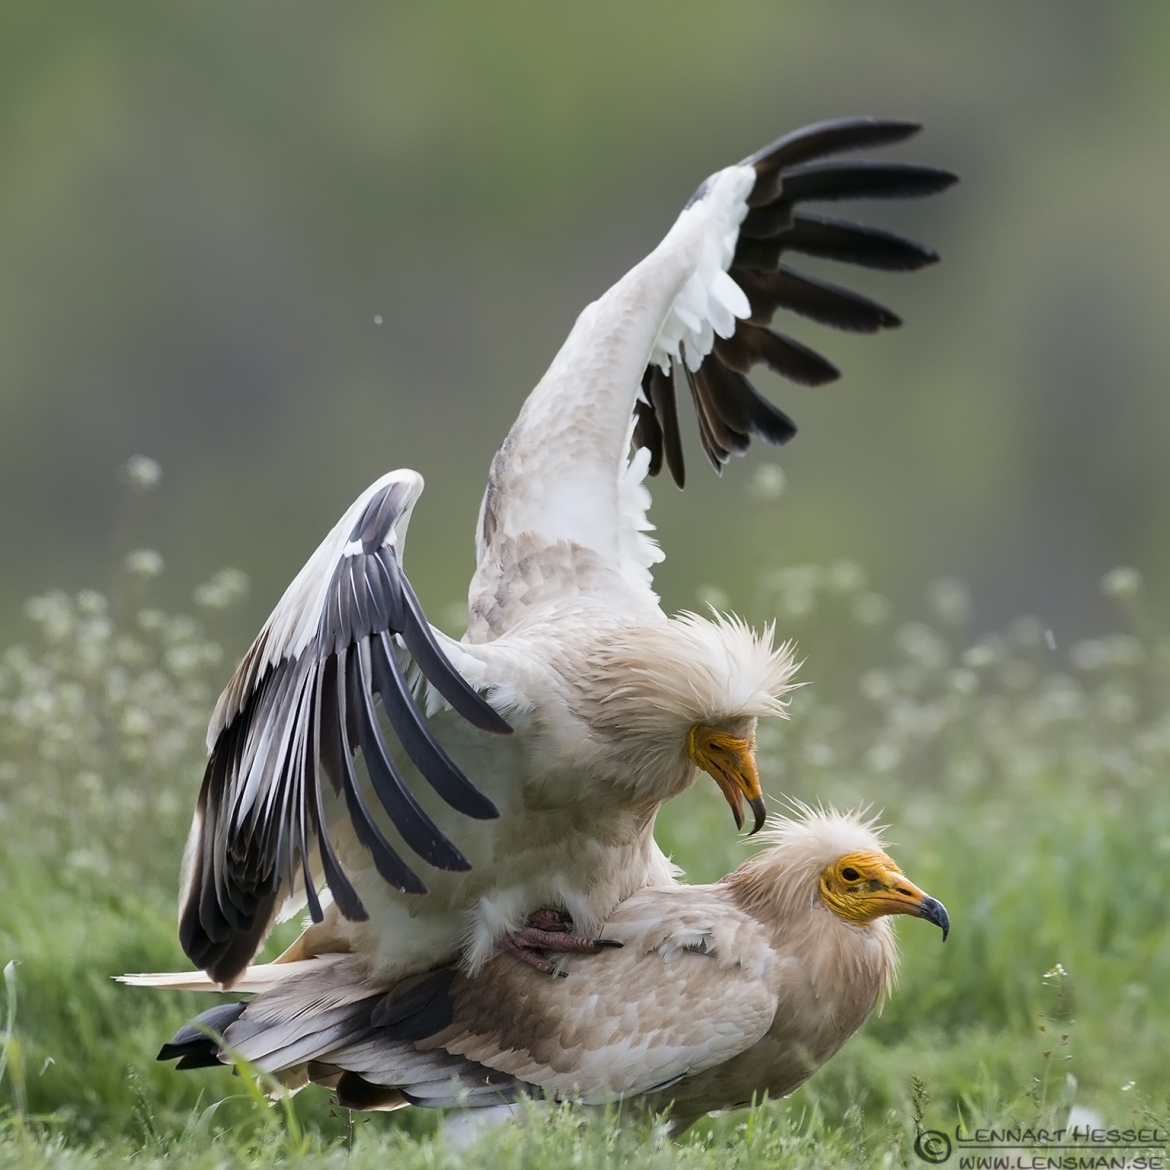 Mating Egyptian Vultures in Bulgaria africa geographic article